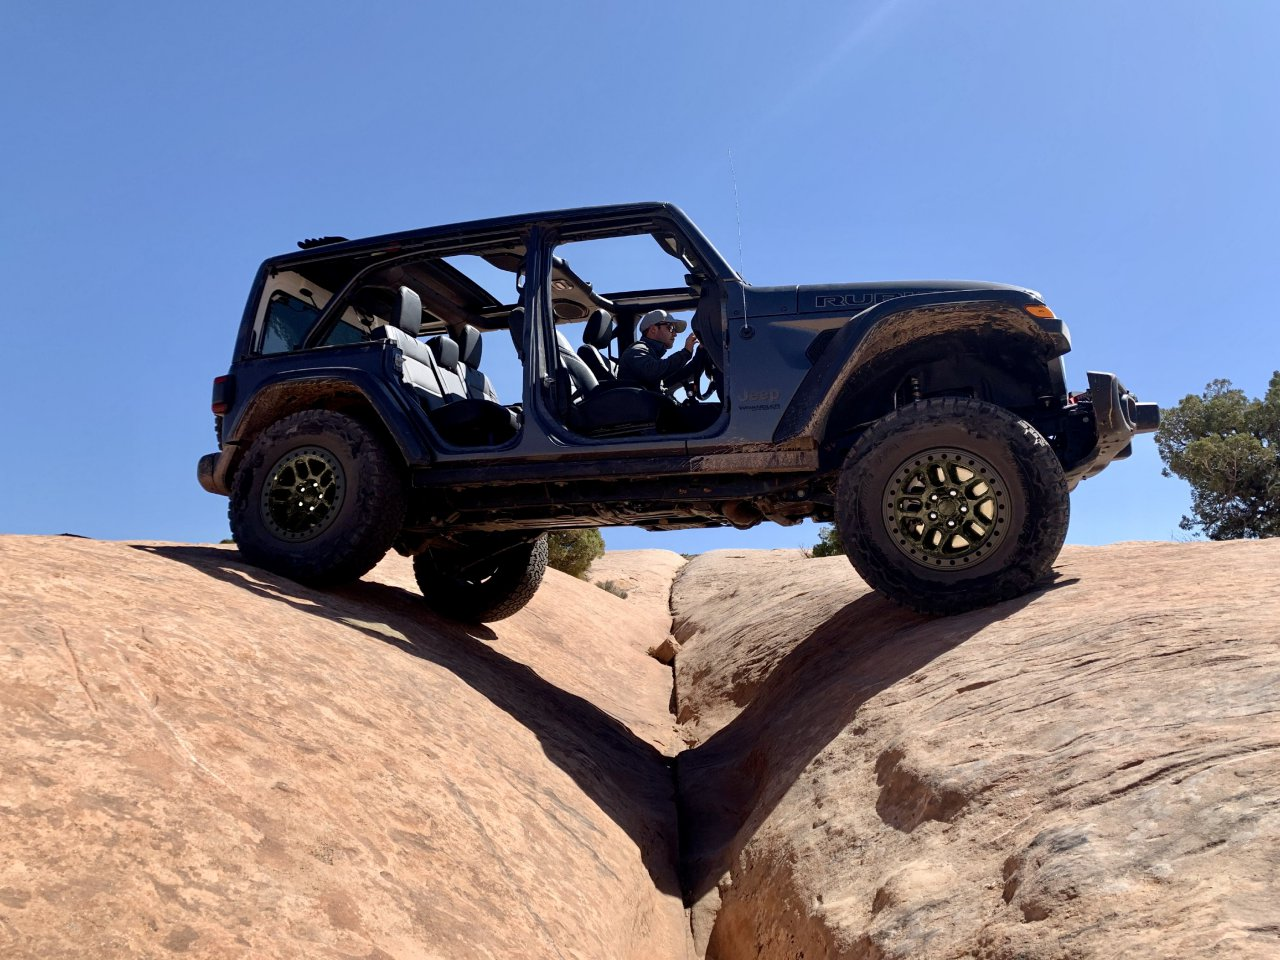 Jeep, Jeep unveils Xtreme Recon package for Wrangler, ClassicCars.com Journal